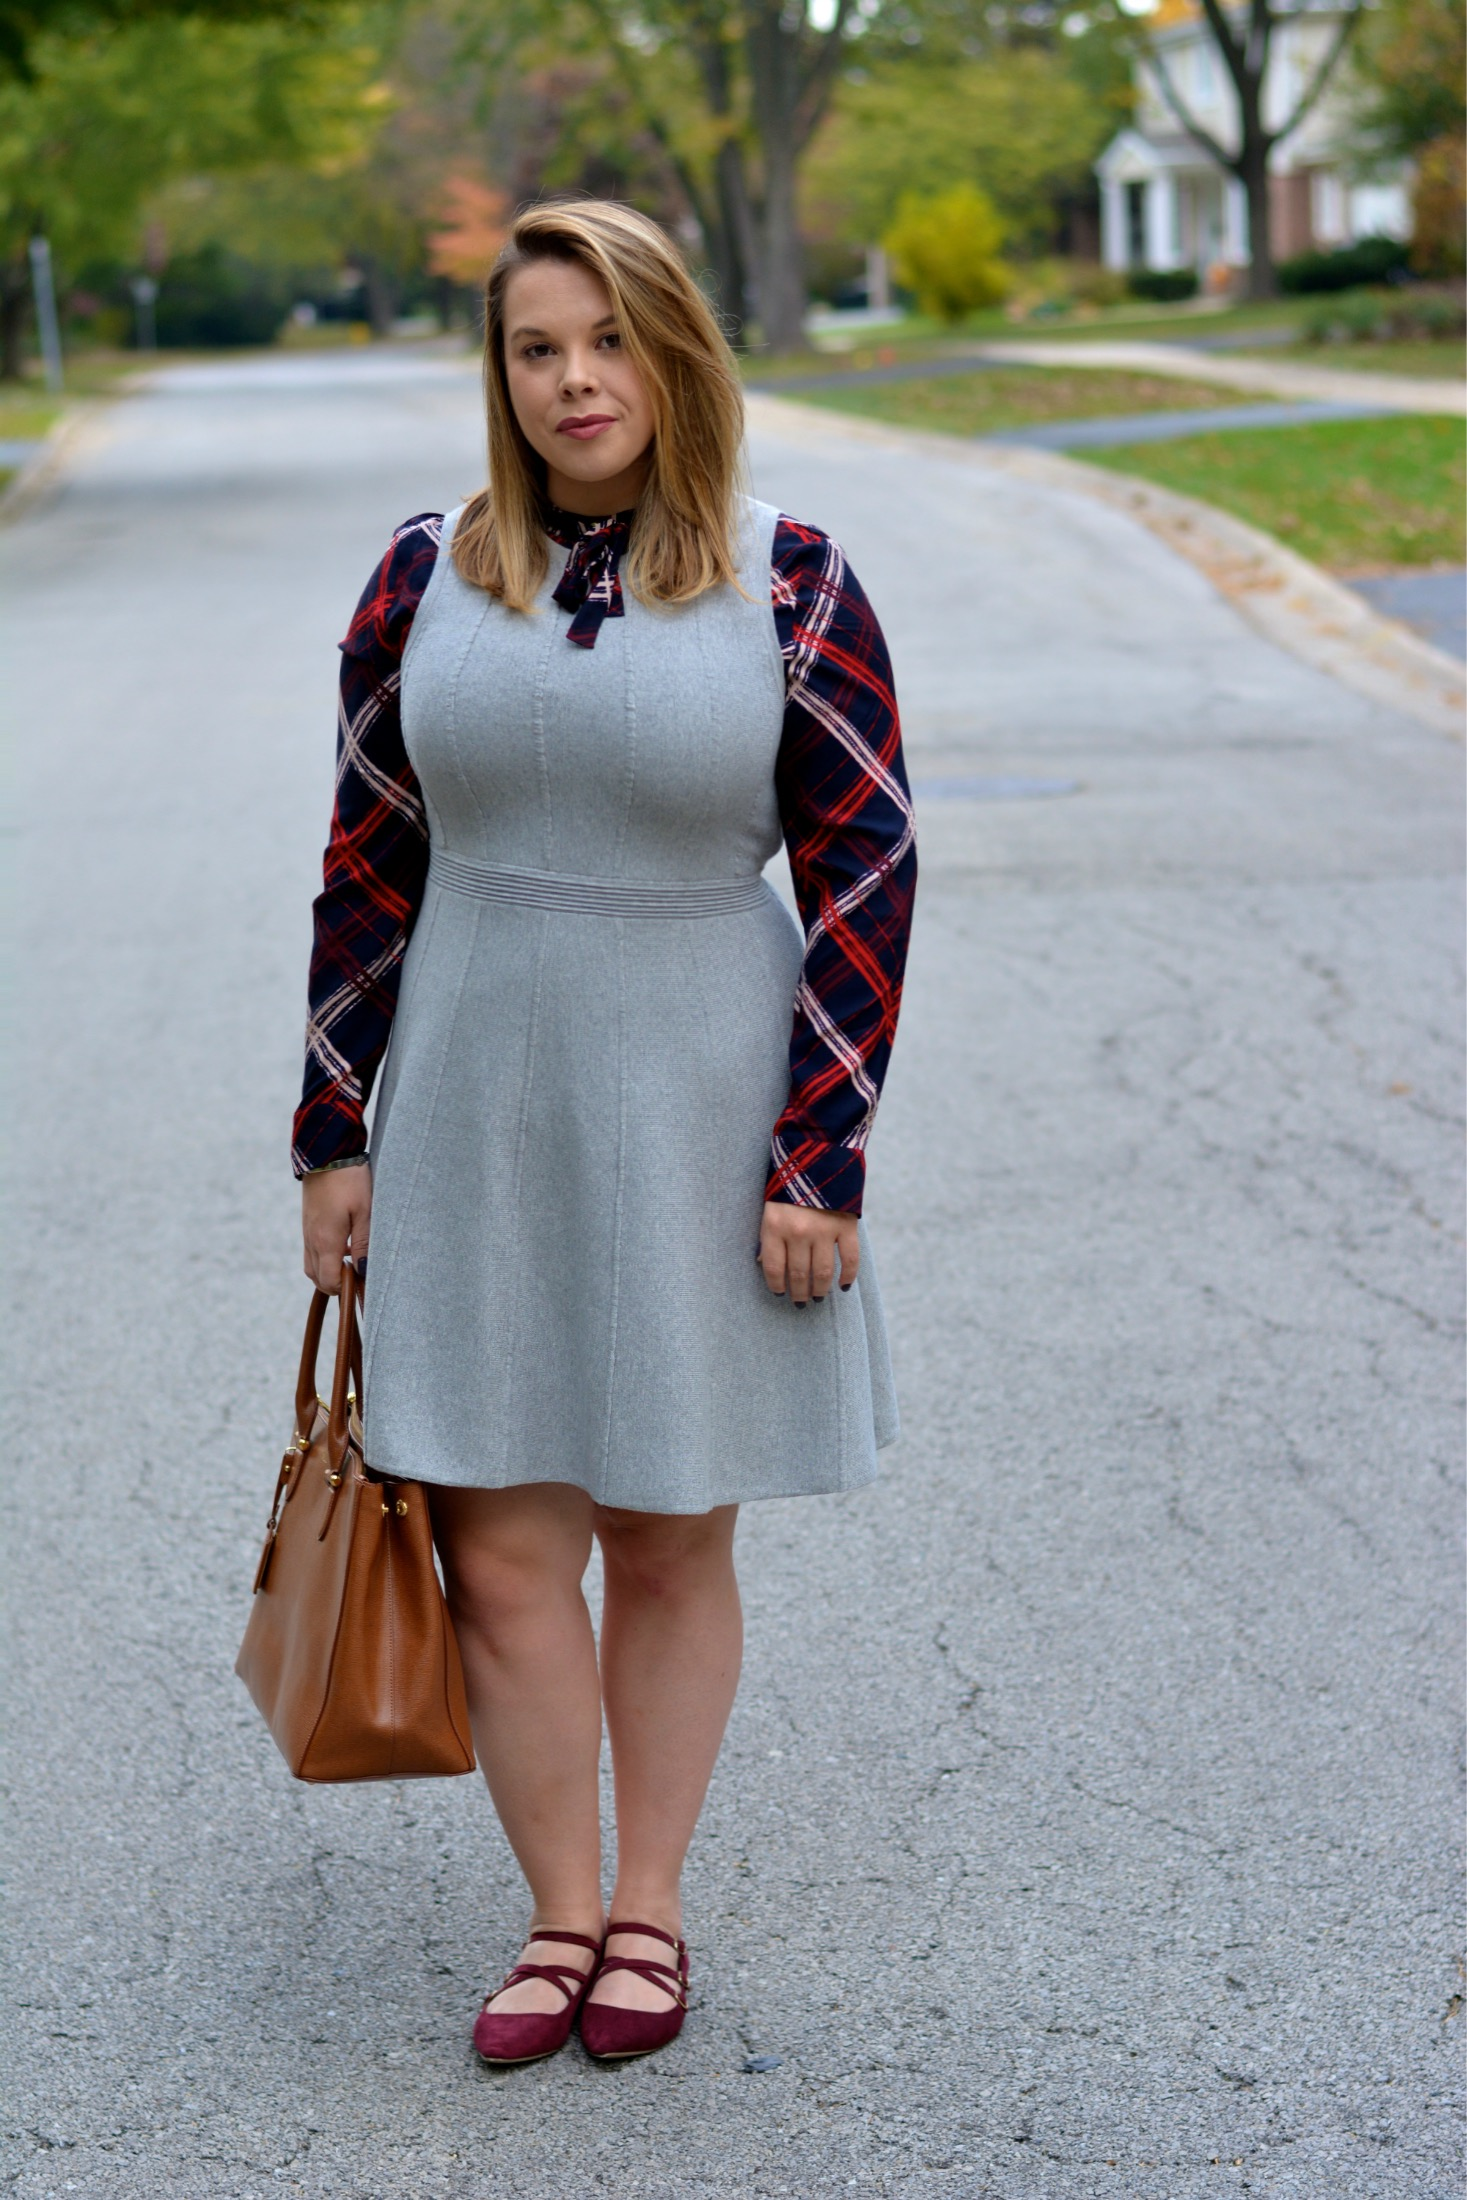 workwear-wednesday-layered-sweaterdress-6